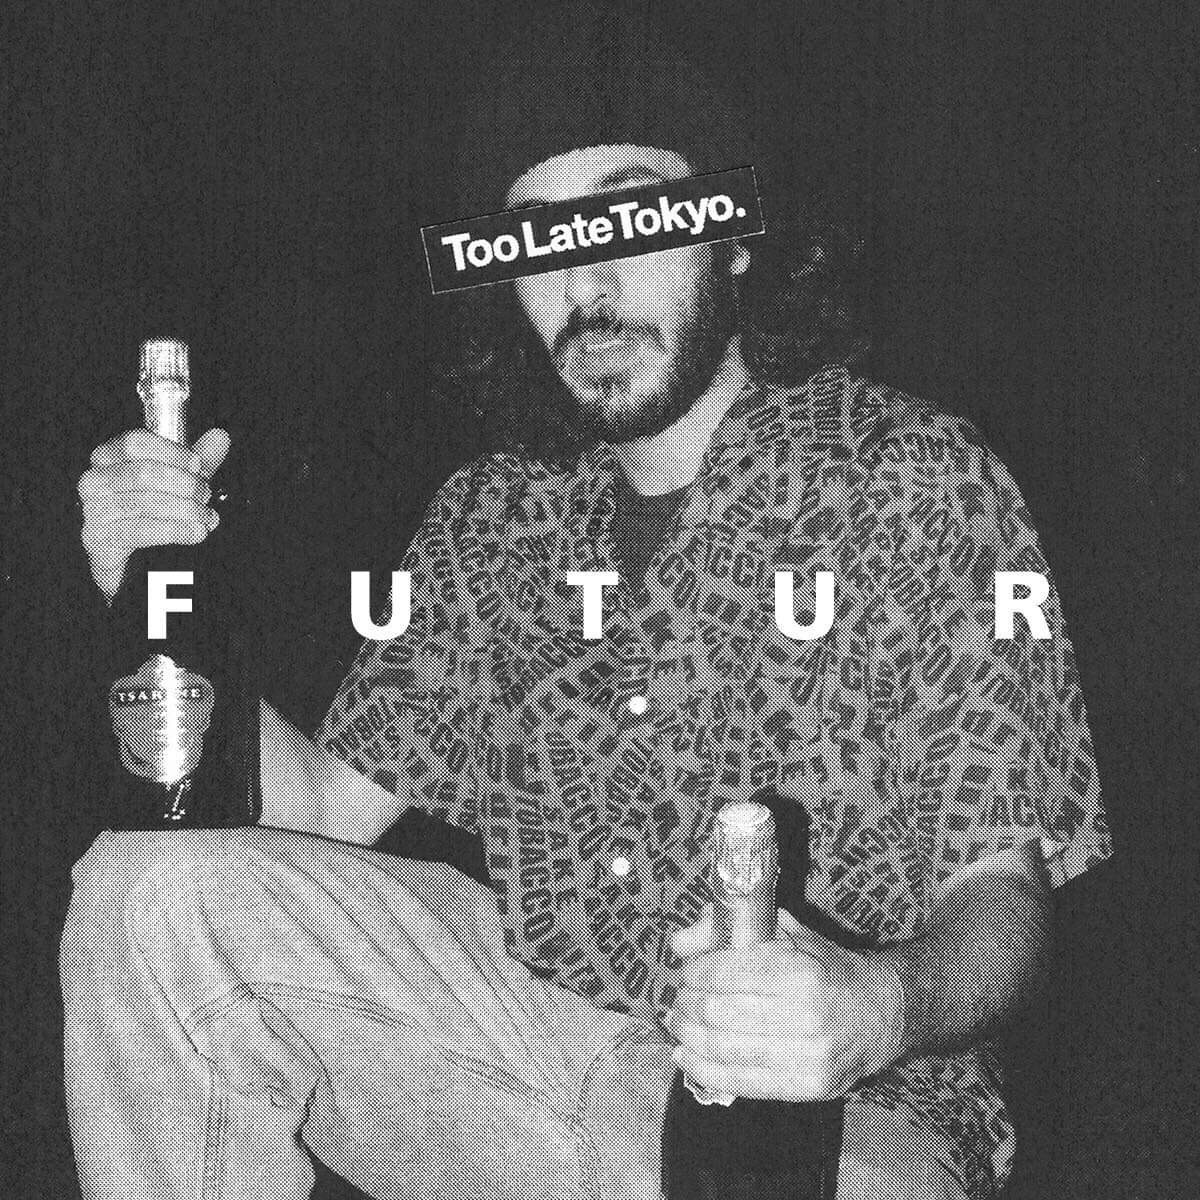 Too Late Tokyo by FUTUR